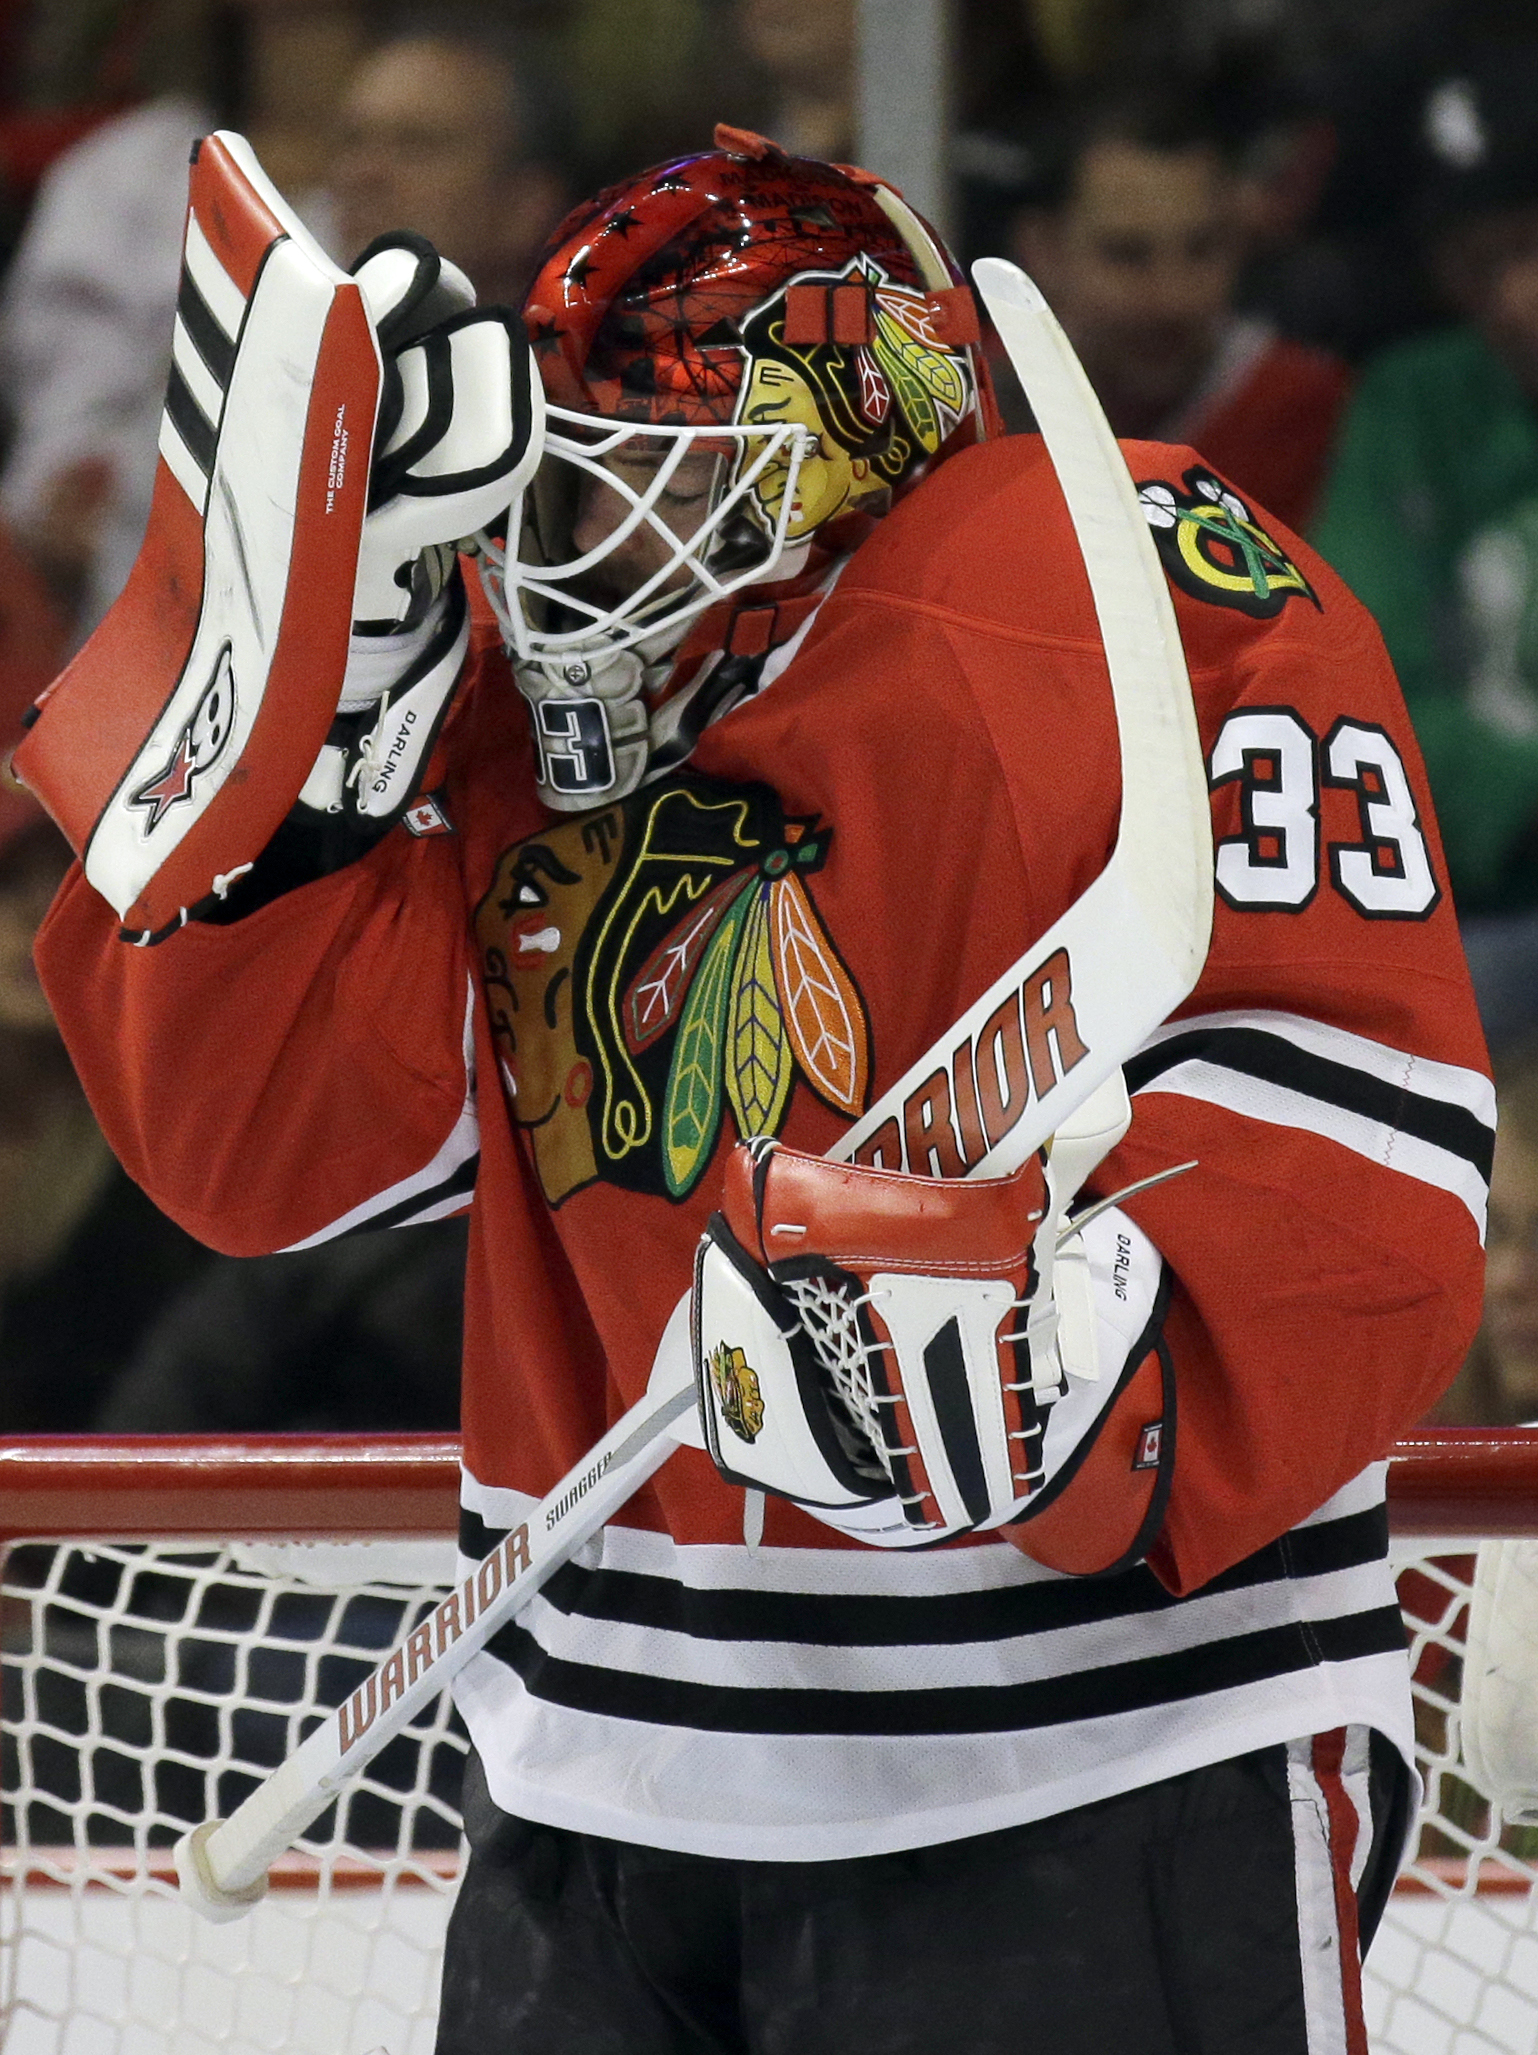 Chicago Blackhawks goalie Scott Darling checks his helmet during the first period in Game 3 of an NHL Western Conference hockey playoff series against the Nashville Predators Sunday, April 19, 2015, in Chicago. (AP Photo/Nam Y. Huh)